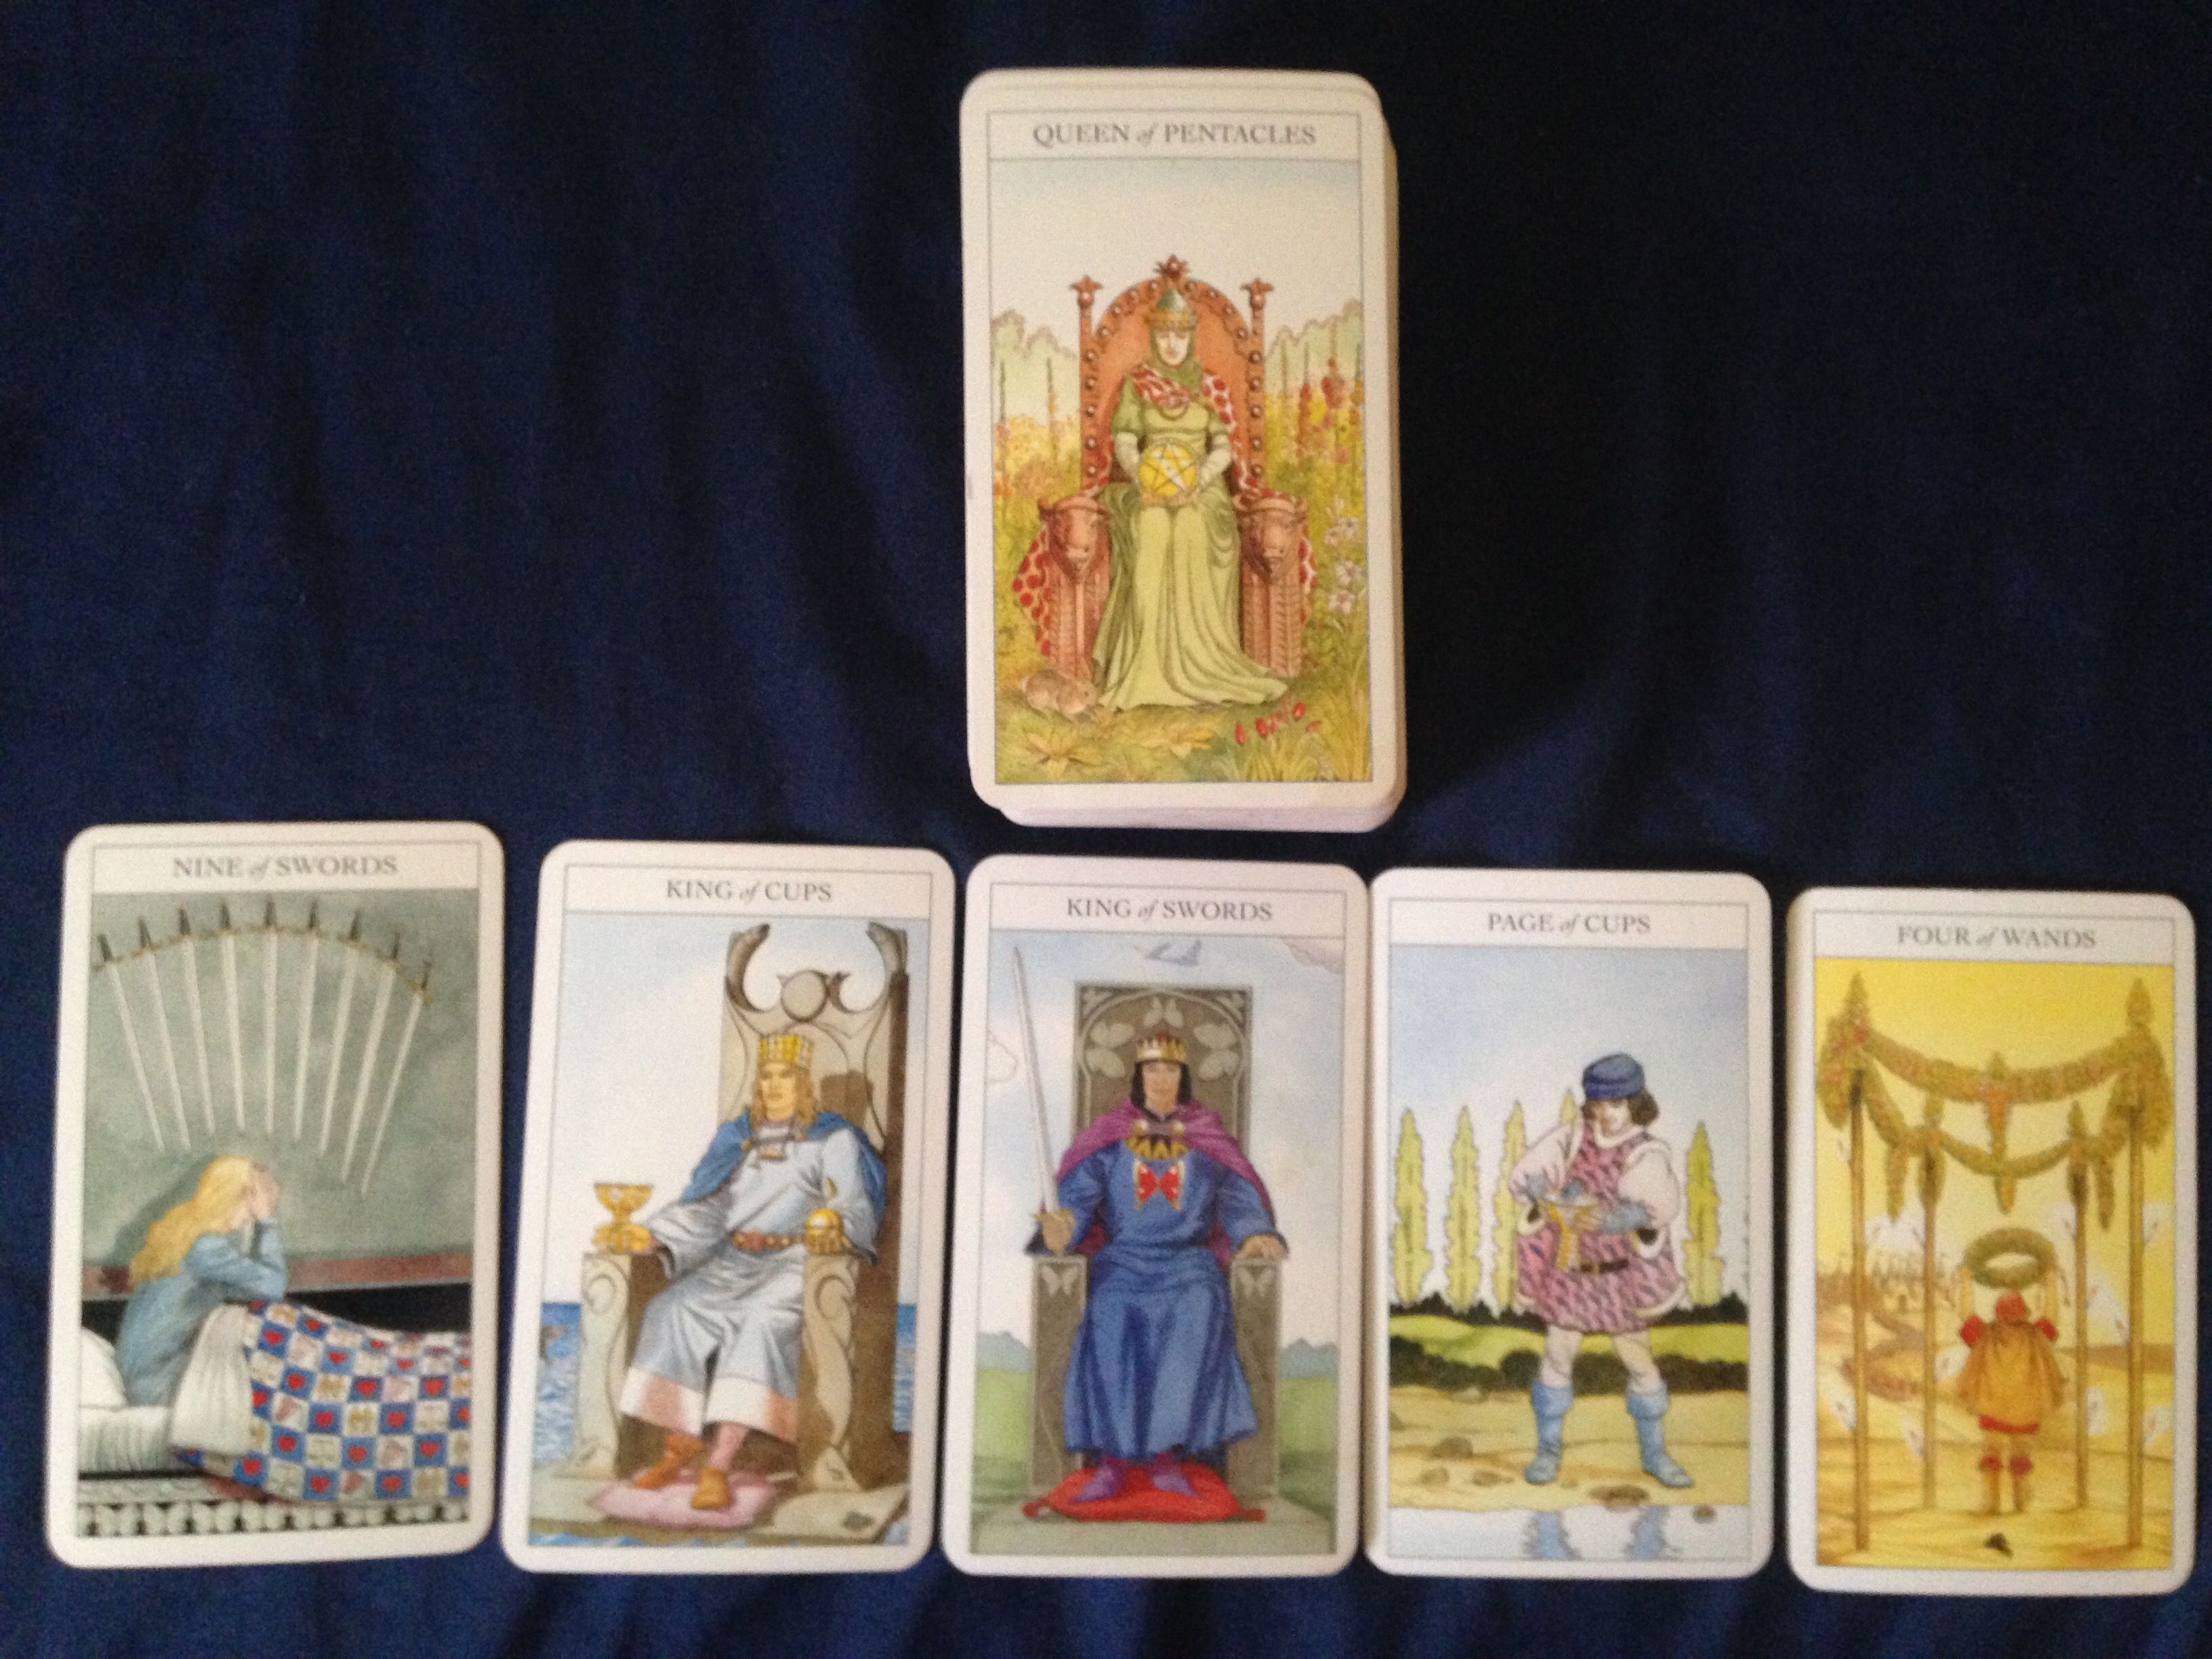 Asking about my divine masculine Queen of pentacles